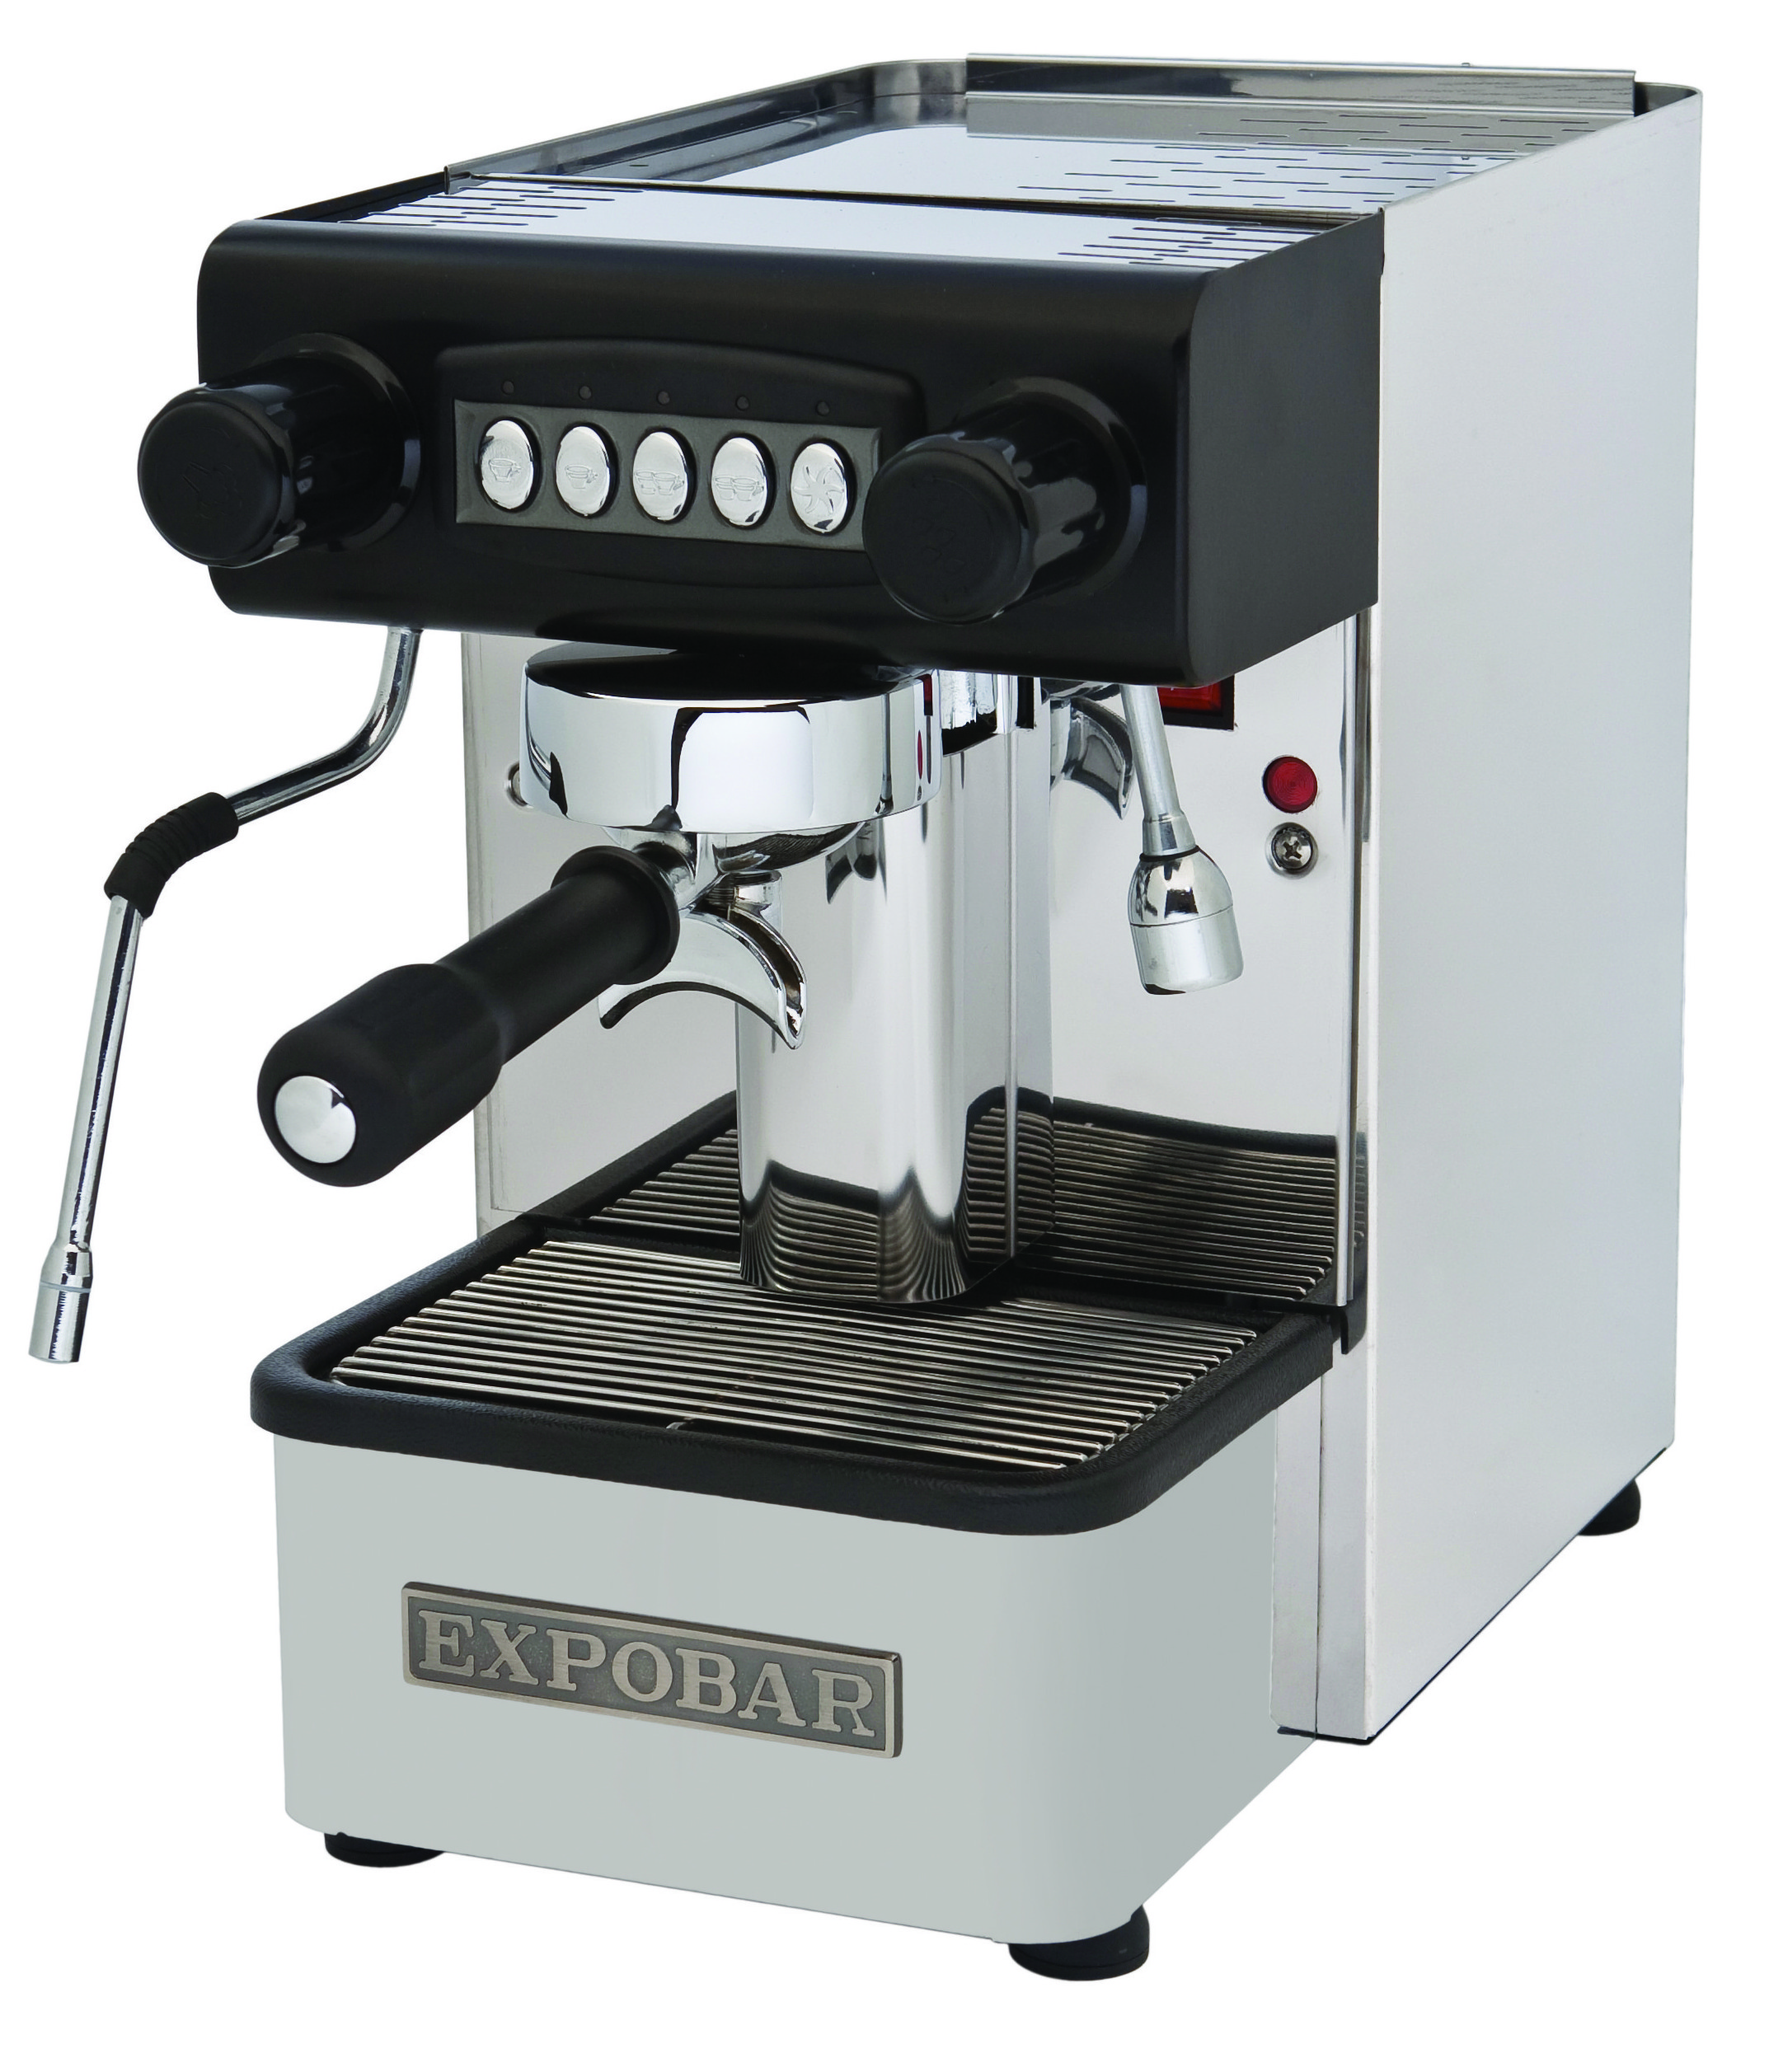 Coffee Maker Heating Element Manufacturers : 1 Group Office Control - Disav? Espresso Equipment Suppliers